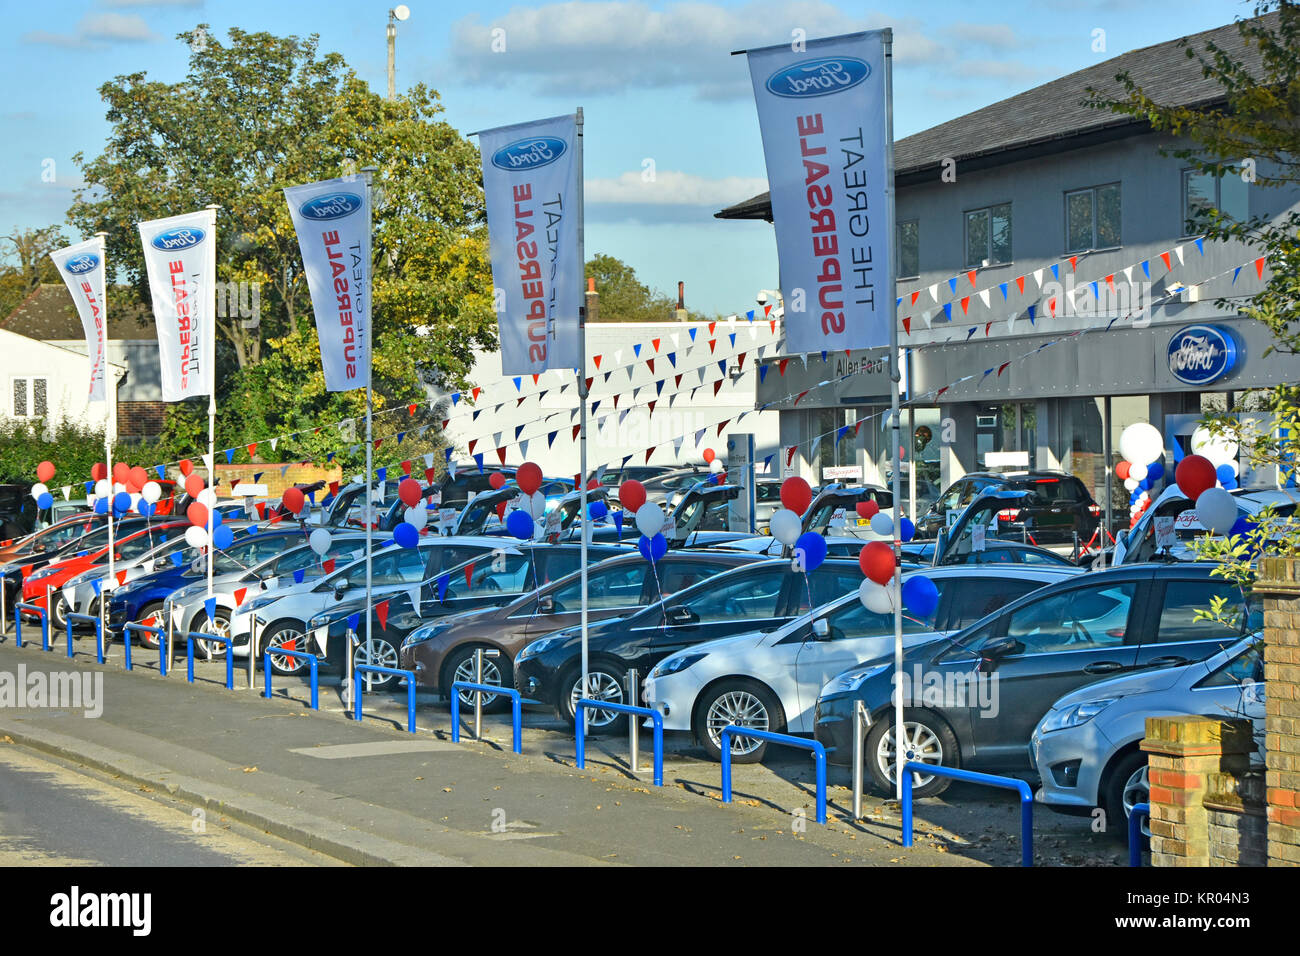 Balloons bunting & banners promoting & advertising by a Ford main car dealer holding supersale of used secondhand - Stock Image